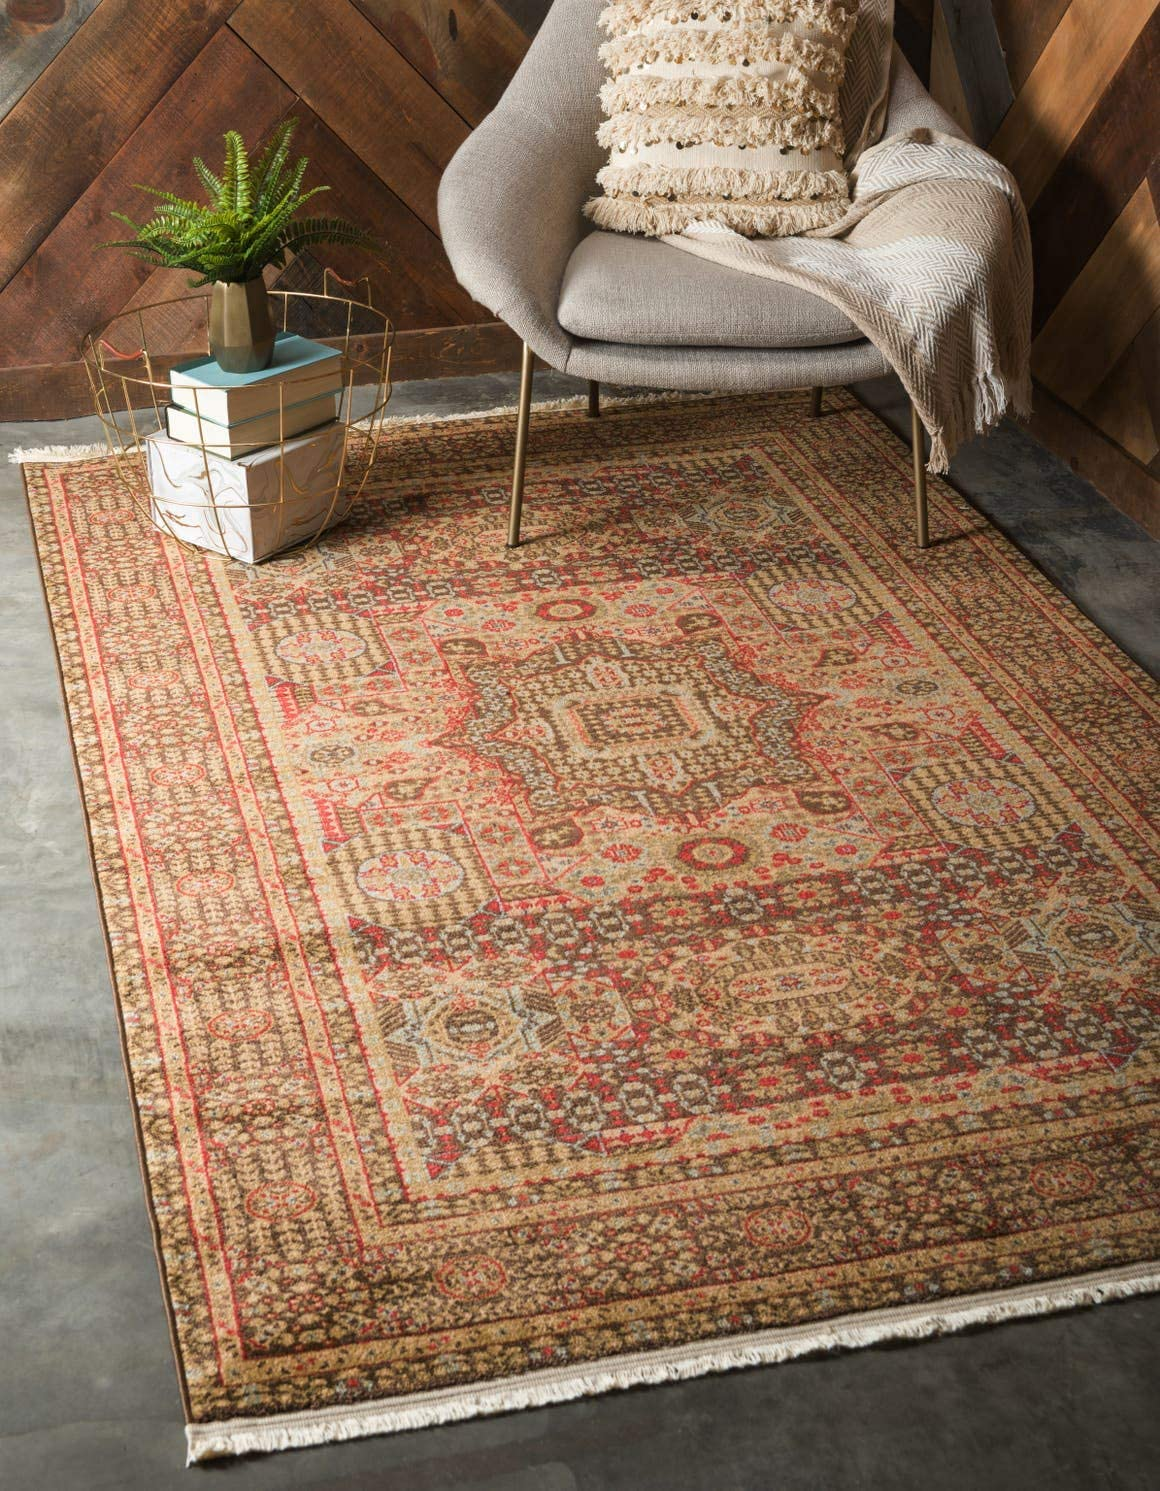 Unique Loom Palace Collection Traditoinal Geometric Classic Brown Area Rug 9 0 x 12 0